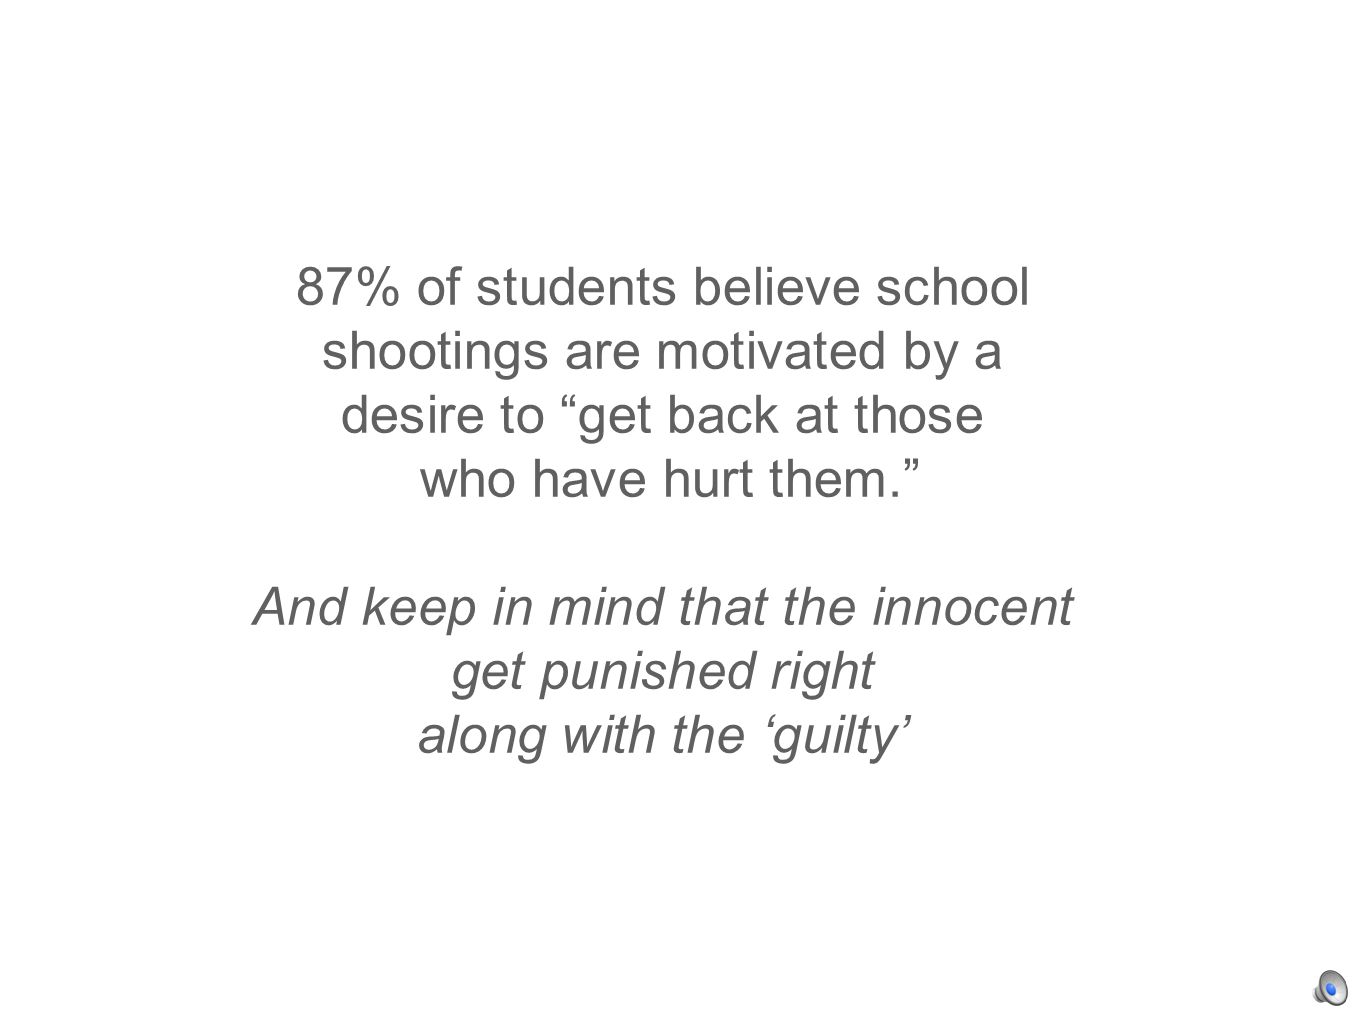 87% of students believe school shootings are motivated by a desire to get back at those who have hurt them.